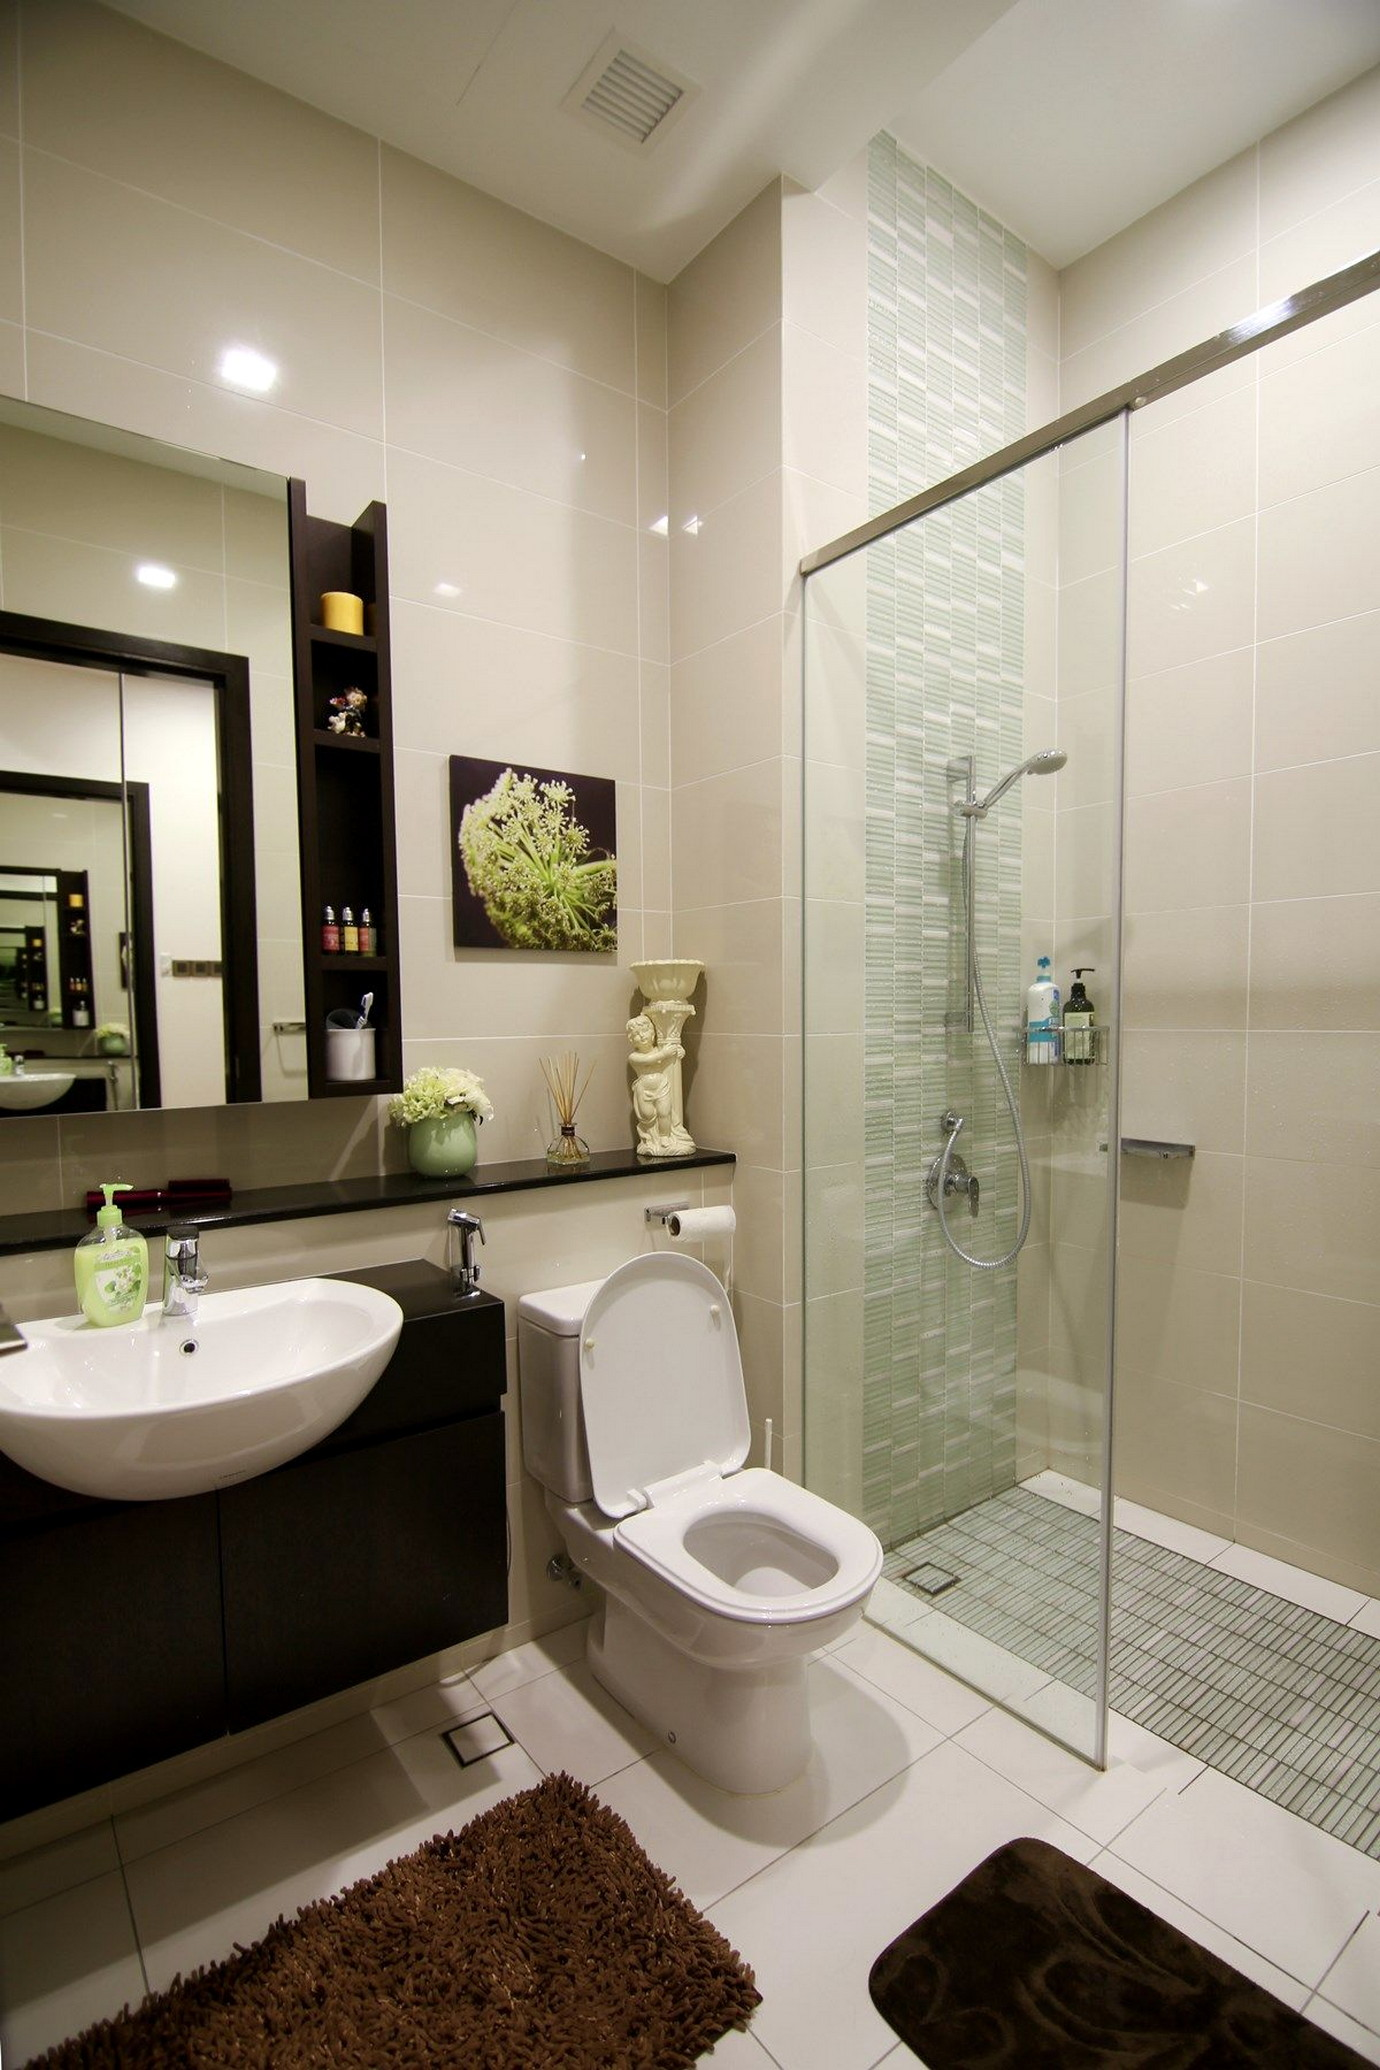 Spacious Room for Simple Bathroom Design Without Bathtub